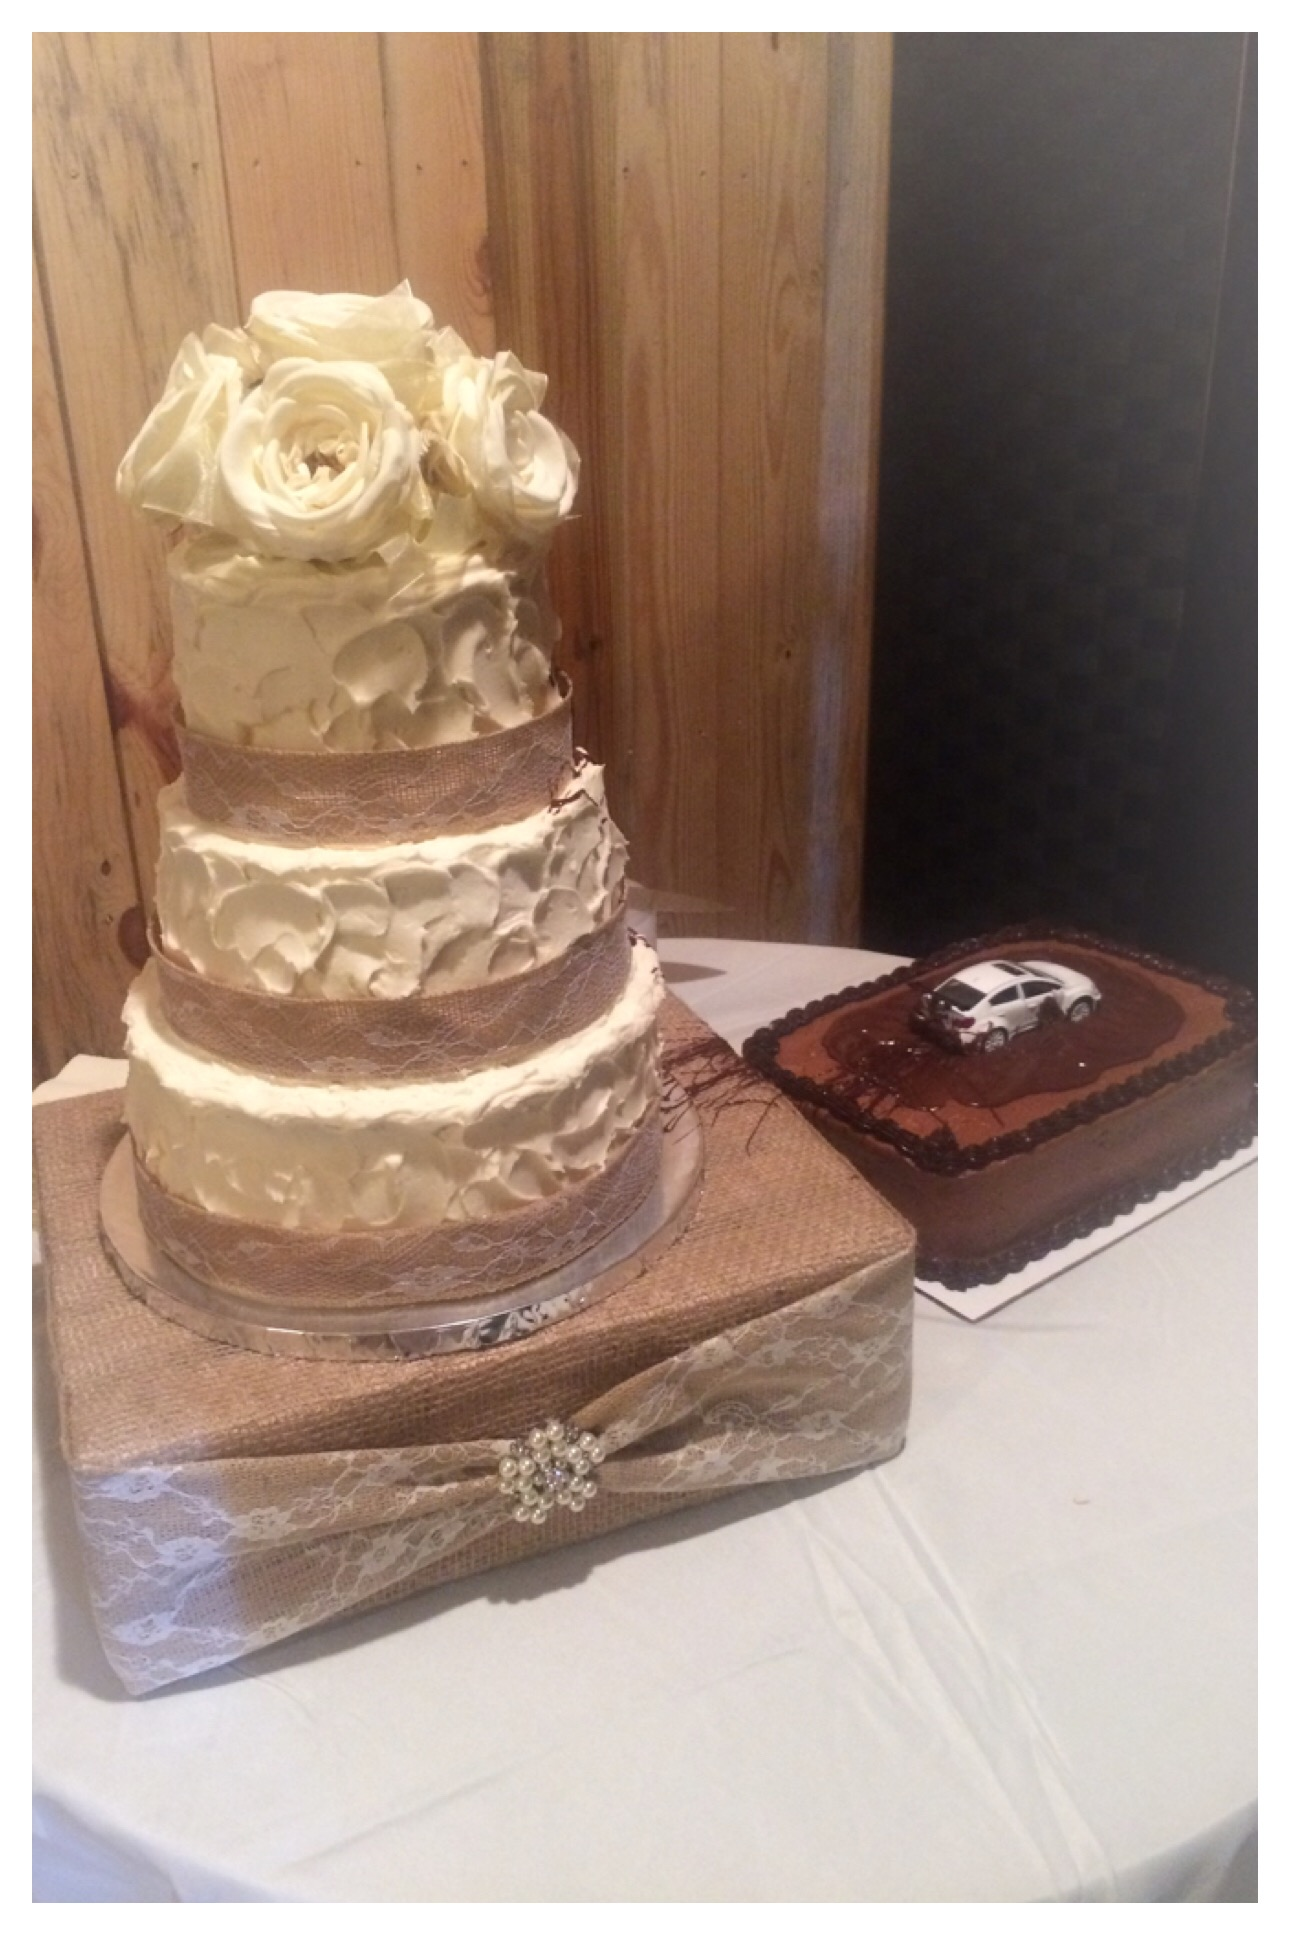 rustic wedding cake with swirl textured buttercream finish, silk flower topper, burlap and lace ribbon, and car peel out chocolate groom's cake